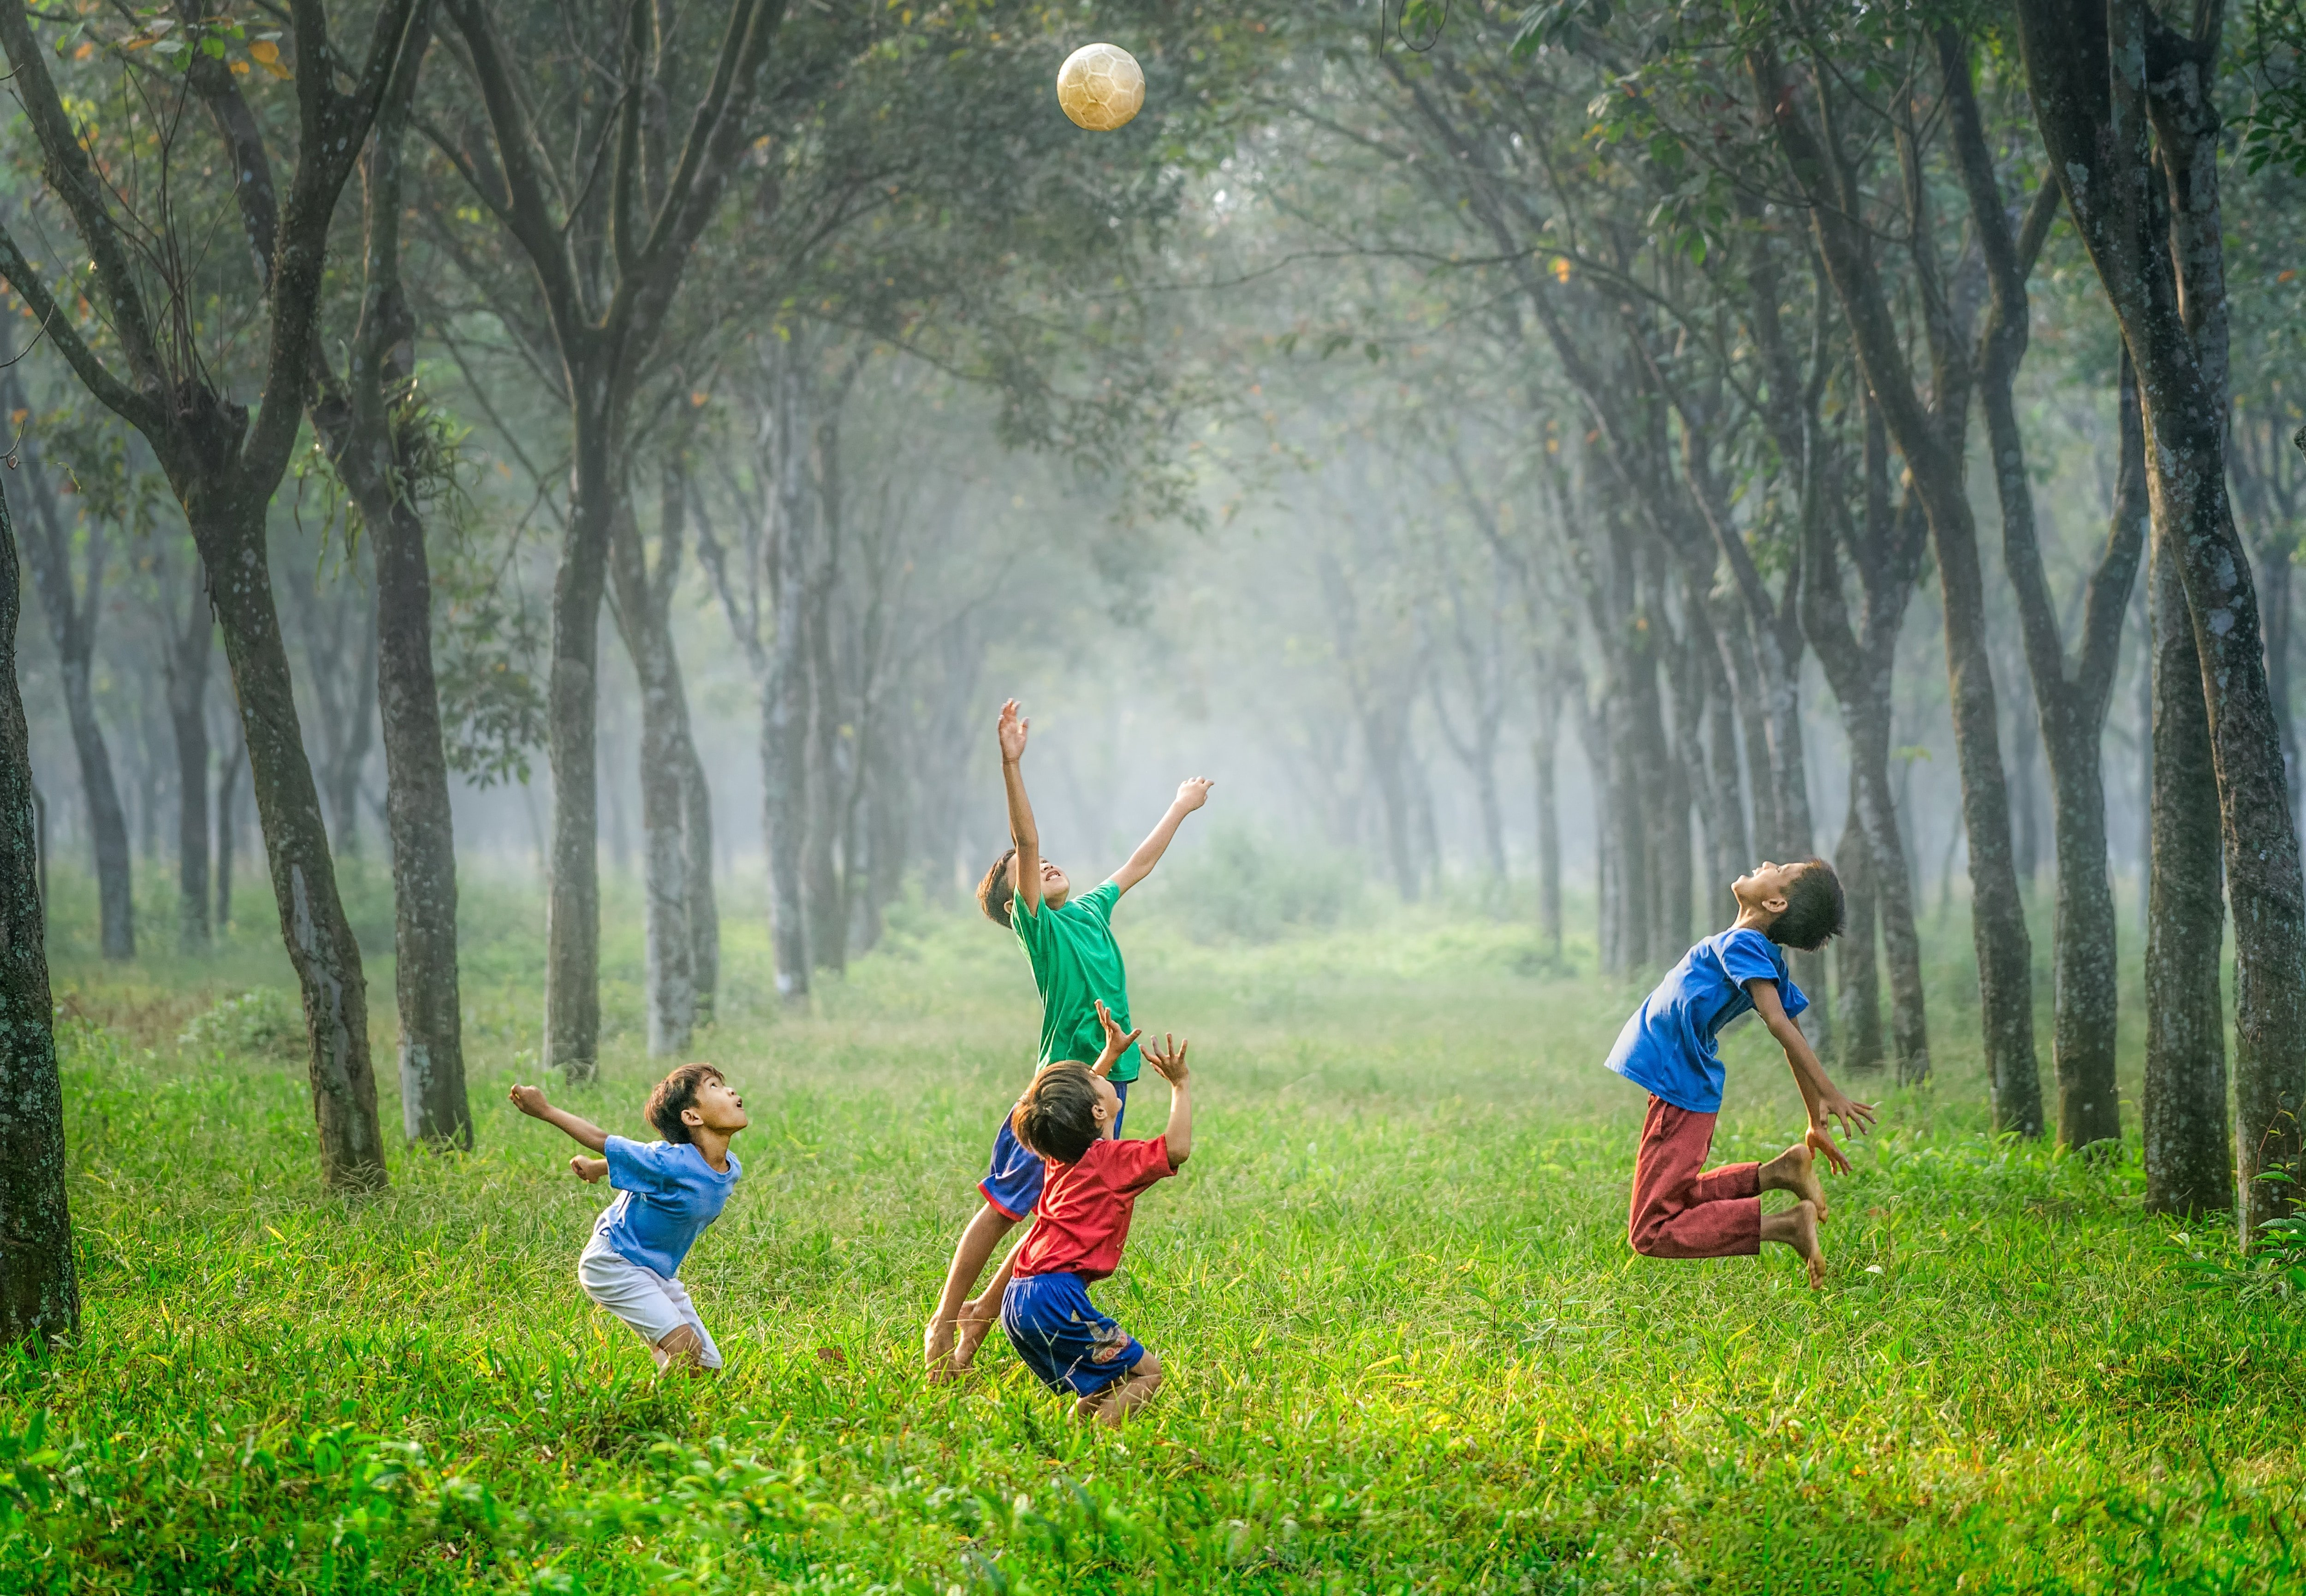 Children playing outdoors.  | Source: Unsplash